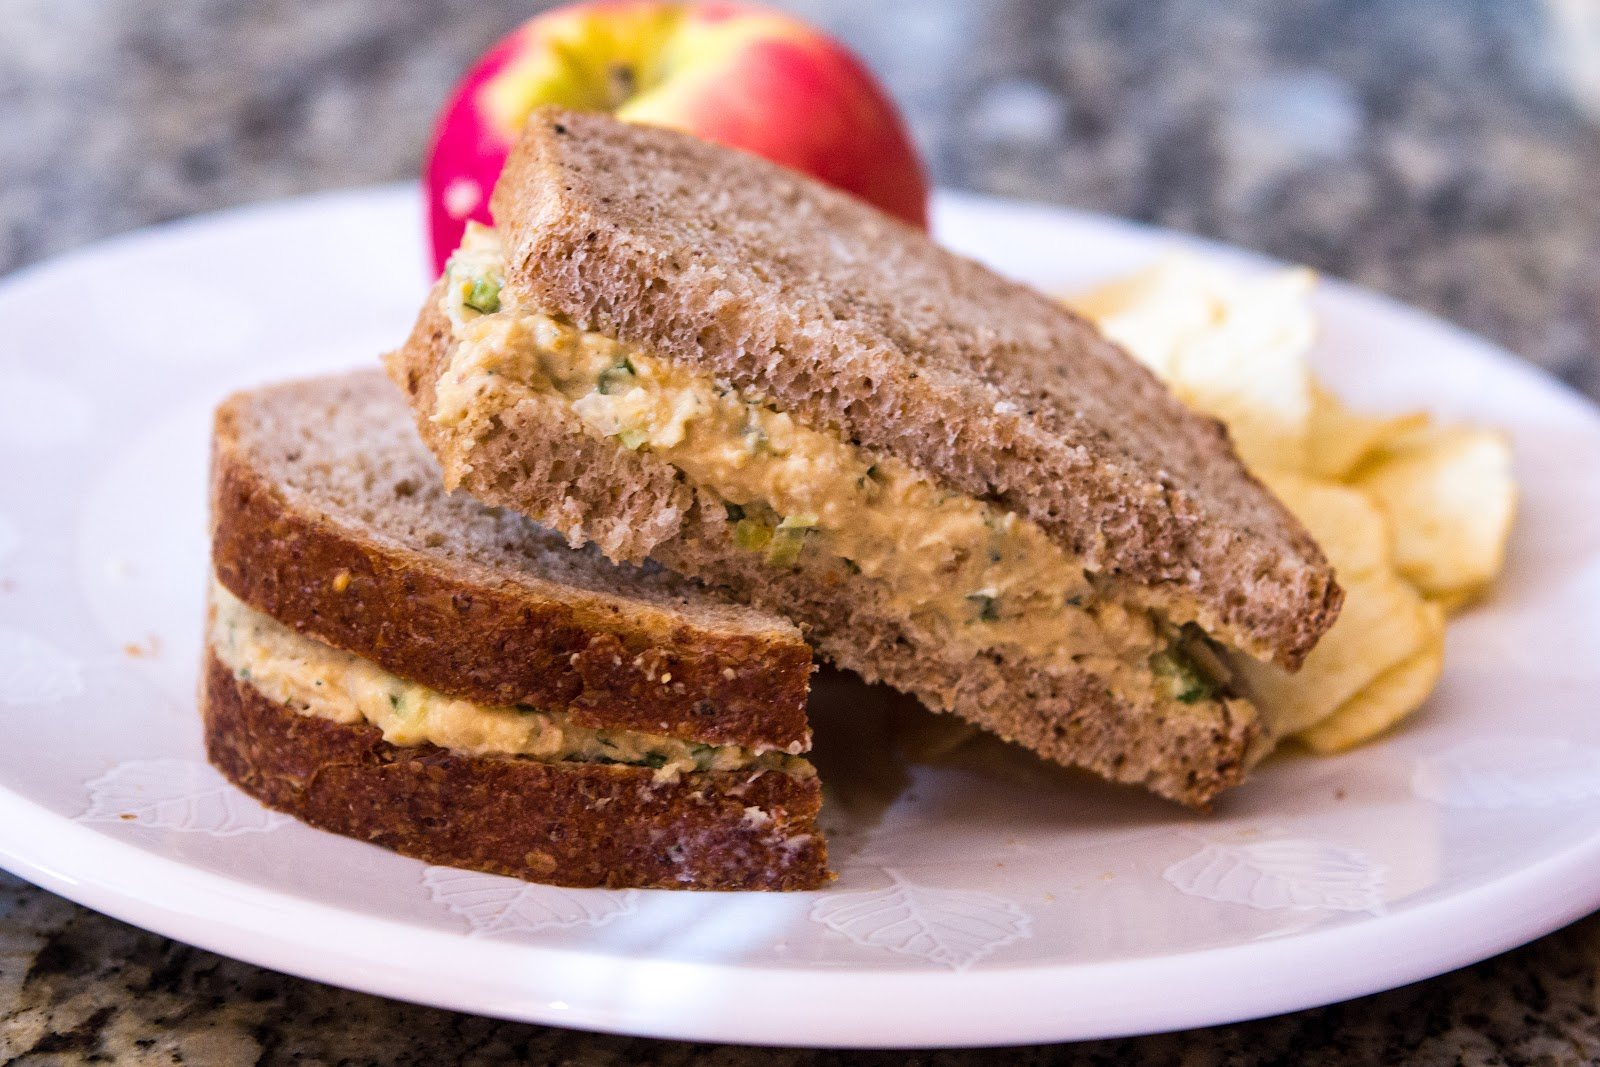 ... : Healthy Protein Lunch: Chickpea Sandwich Spread (Vegetarian/Vegan